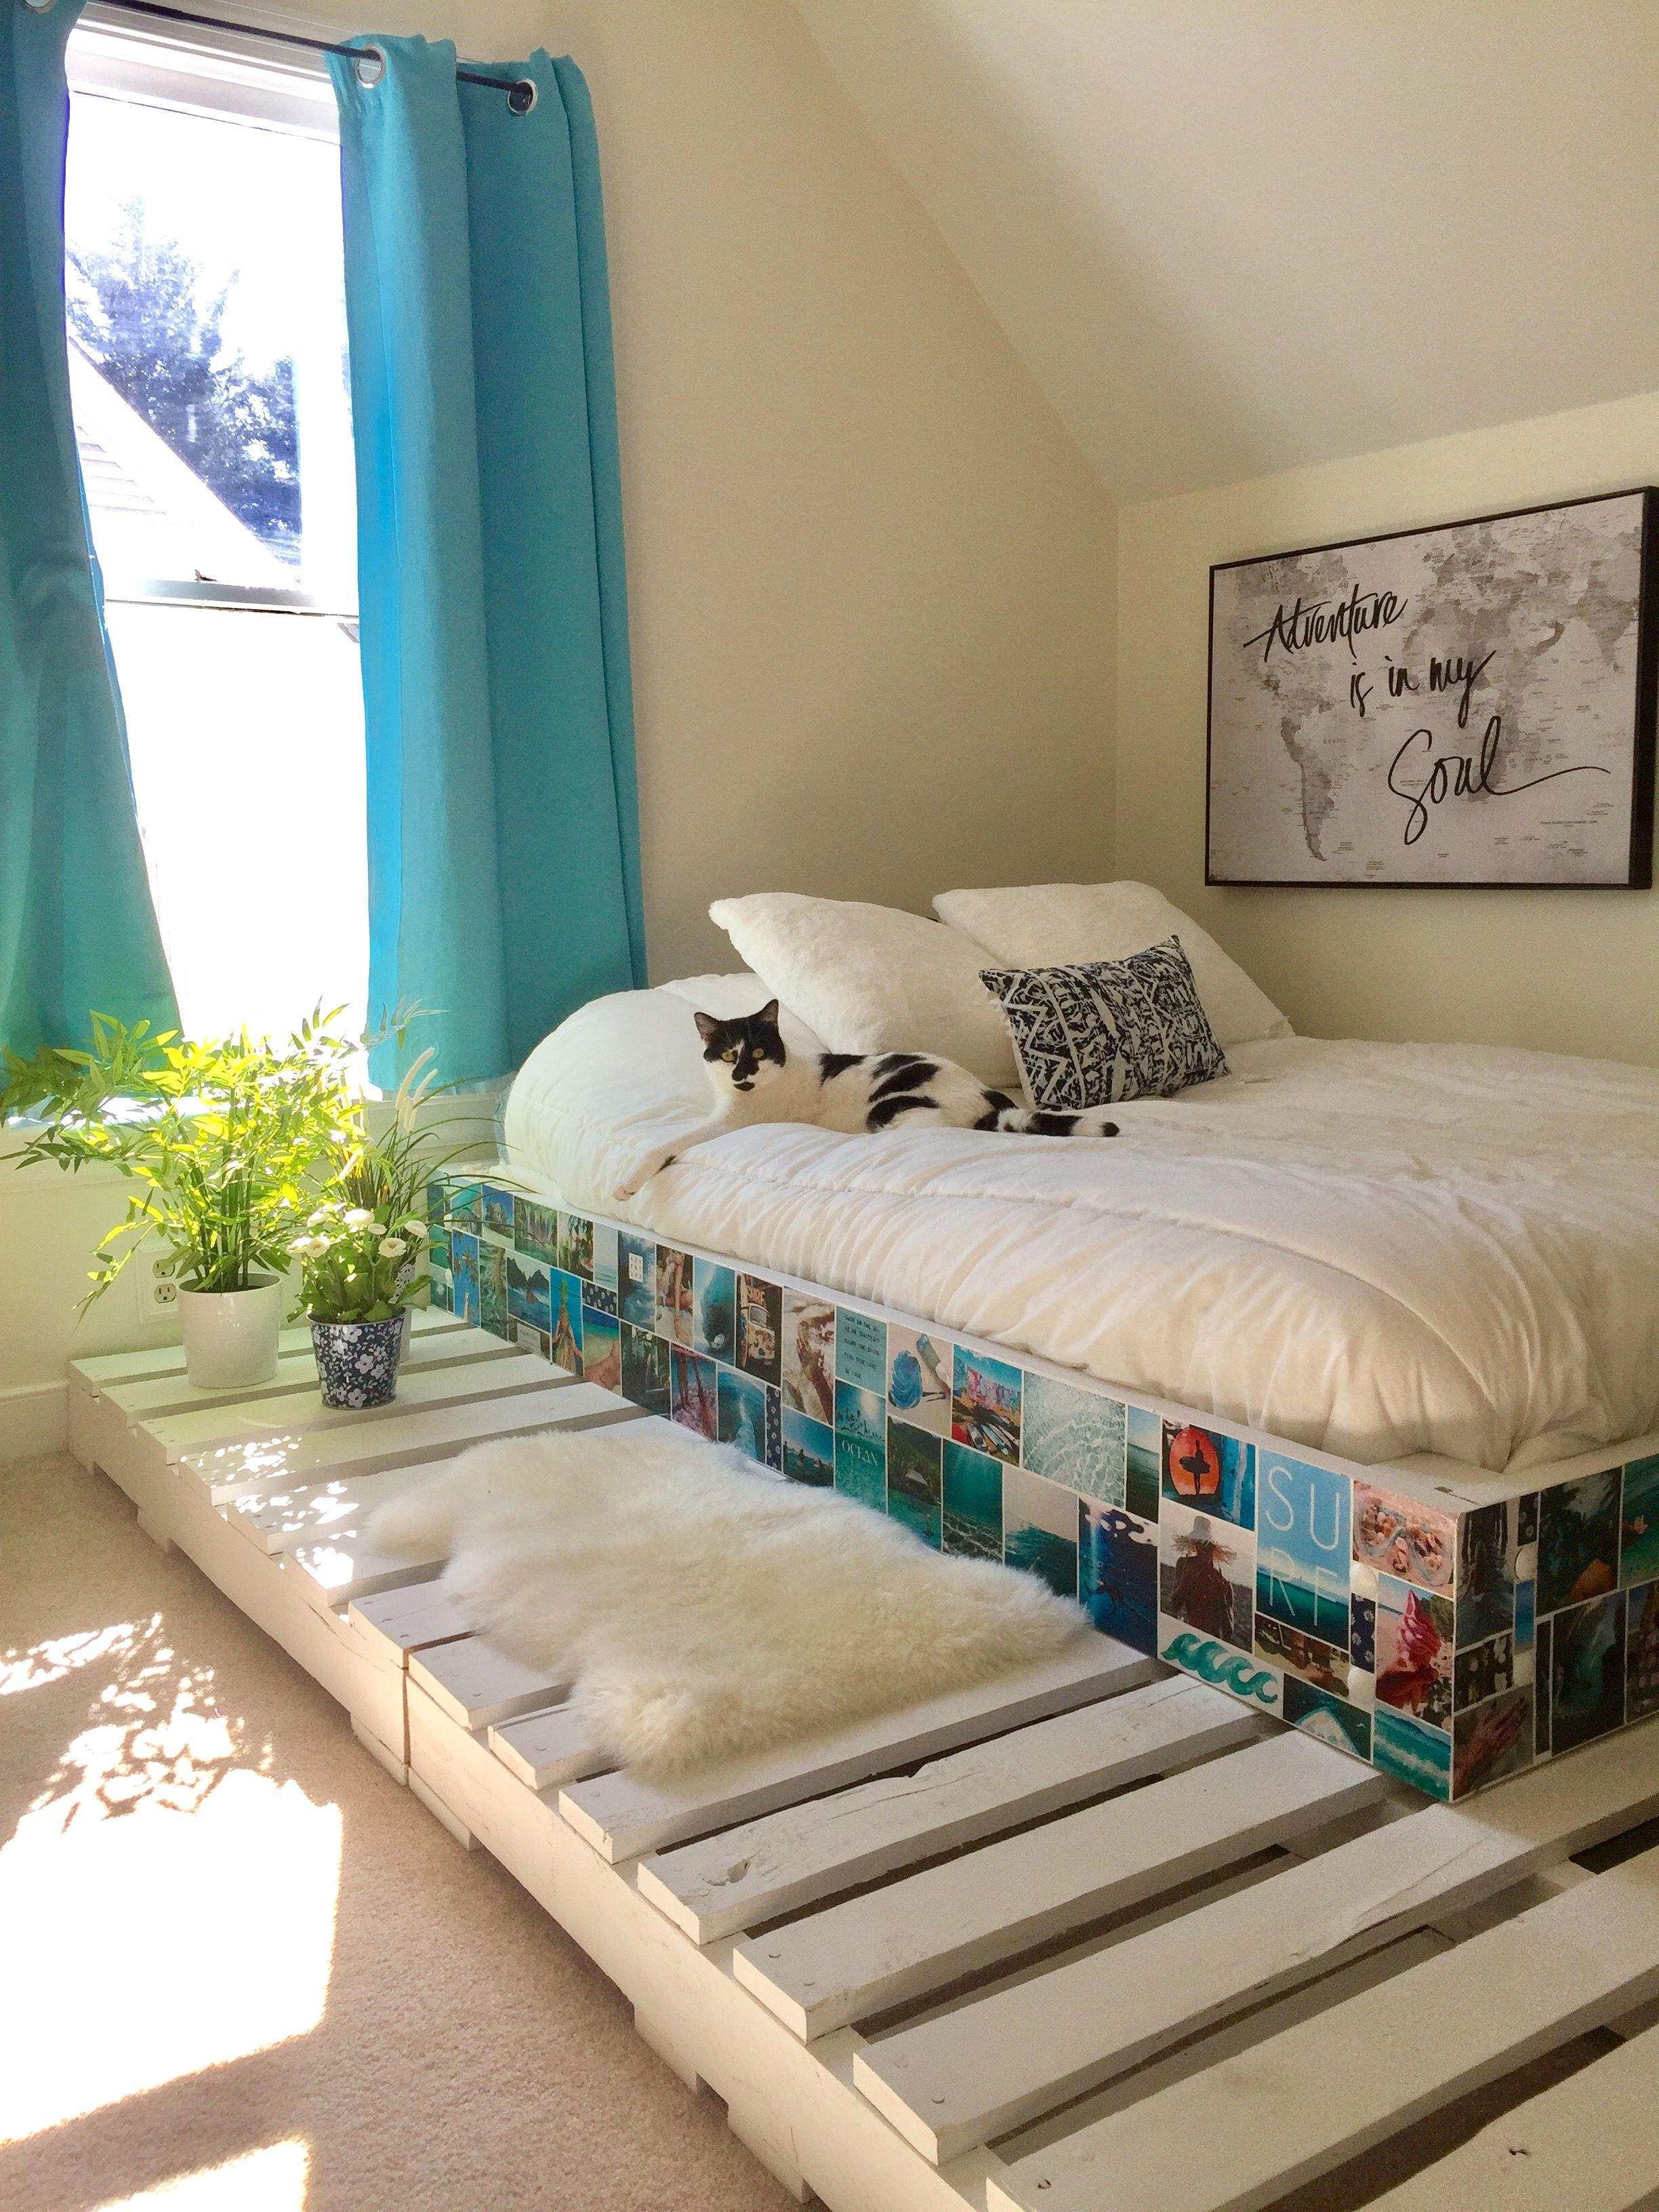 Bedroom Ideas Wooden Pallet Bed Frame Painted Diy Pallet Bed Pallet Bed Frames Diy Pallet Bed Wooden Pallet Beds